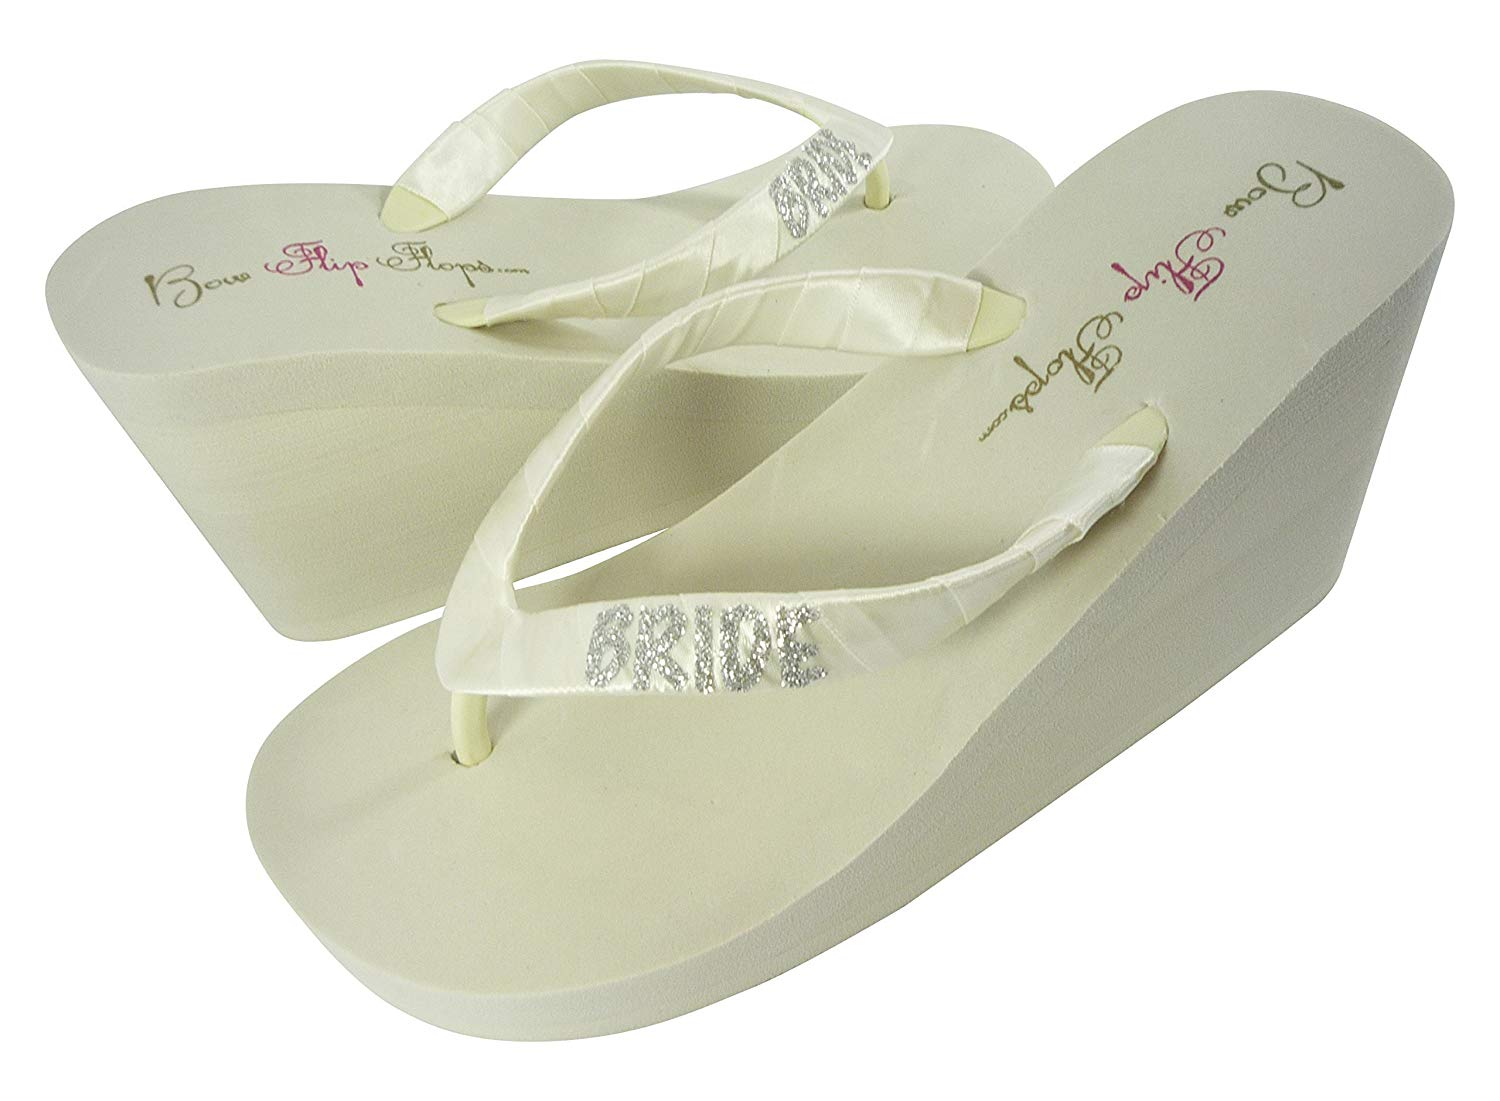 2e42e3b91887 Get Quotations · Customizable Glitter Bride Wedge Flip Flops Wedding Sandals  Ivory White in Low or High Heel